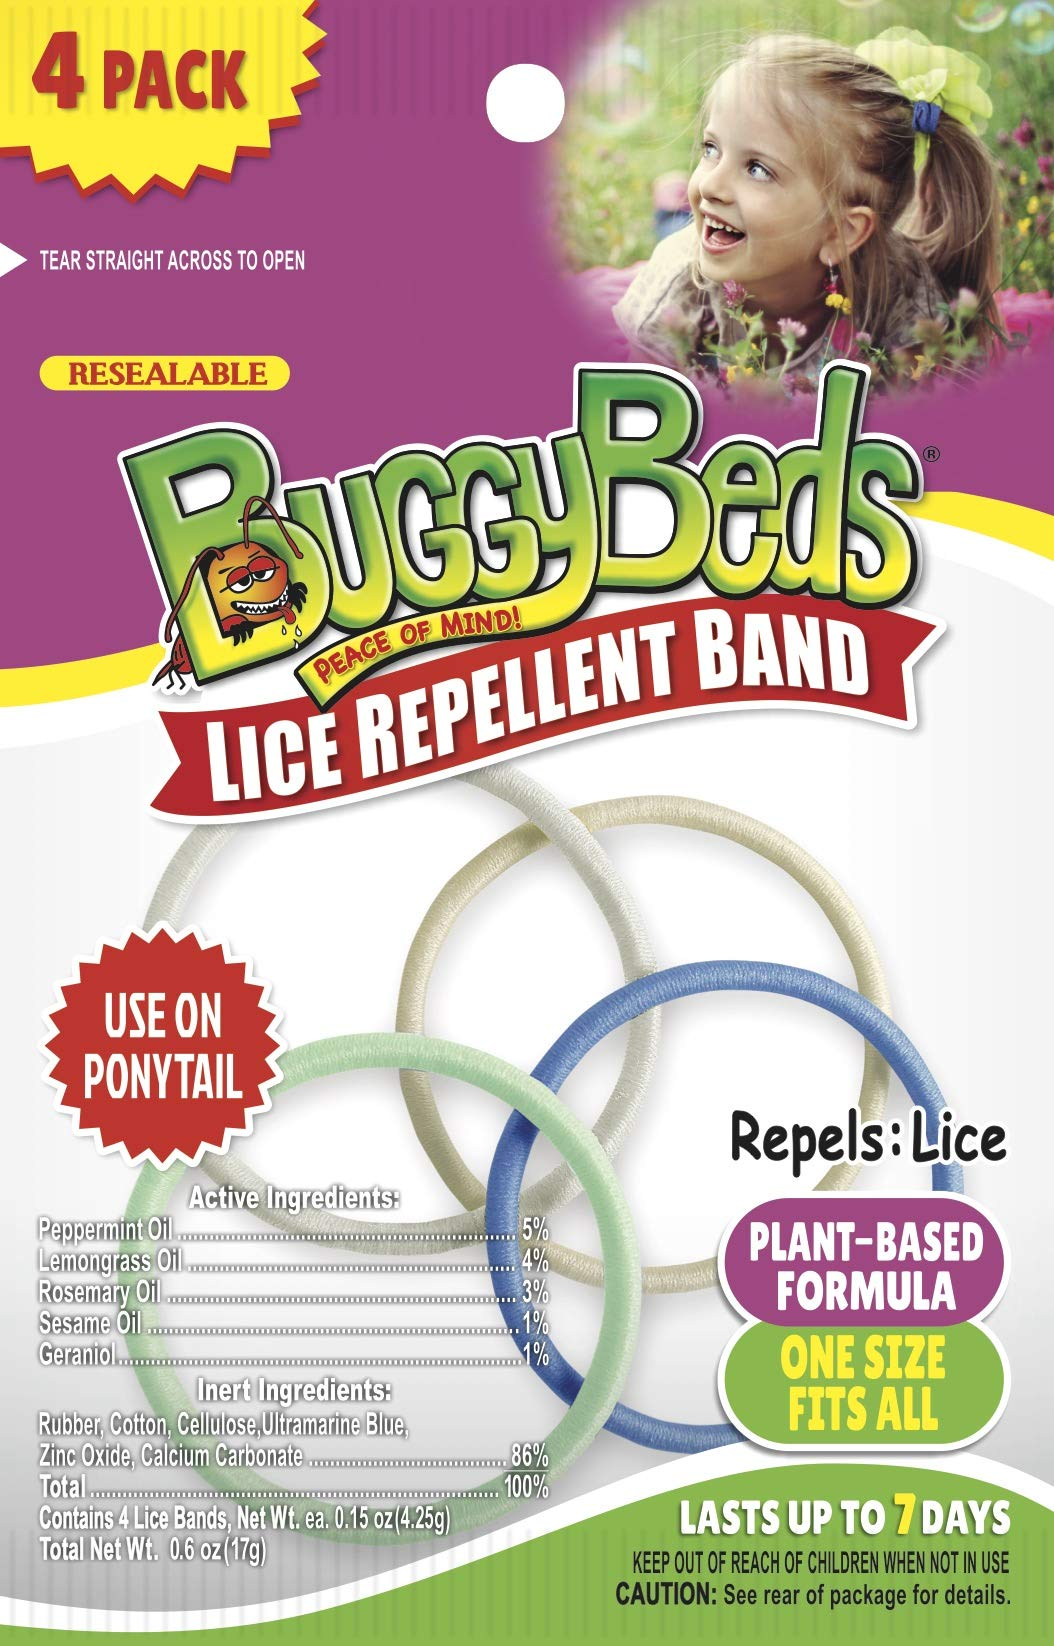 BuggyBeds Lice Repellent Hair Bands, 12 Pack (48 pcs) by BuggyBeds